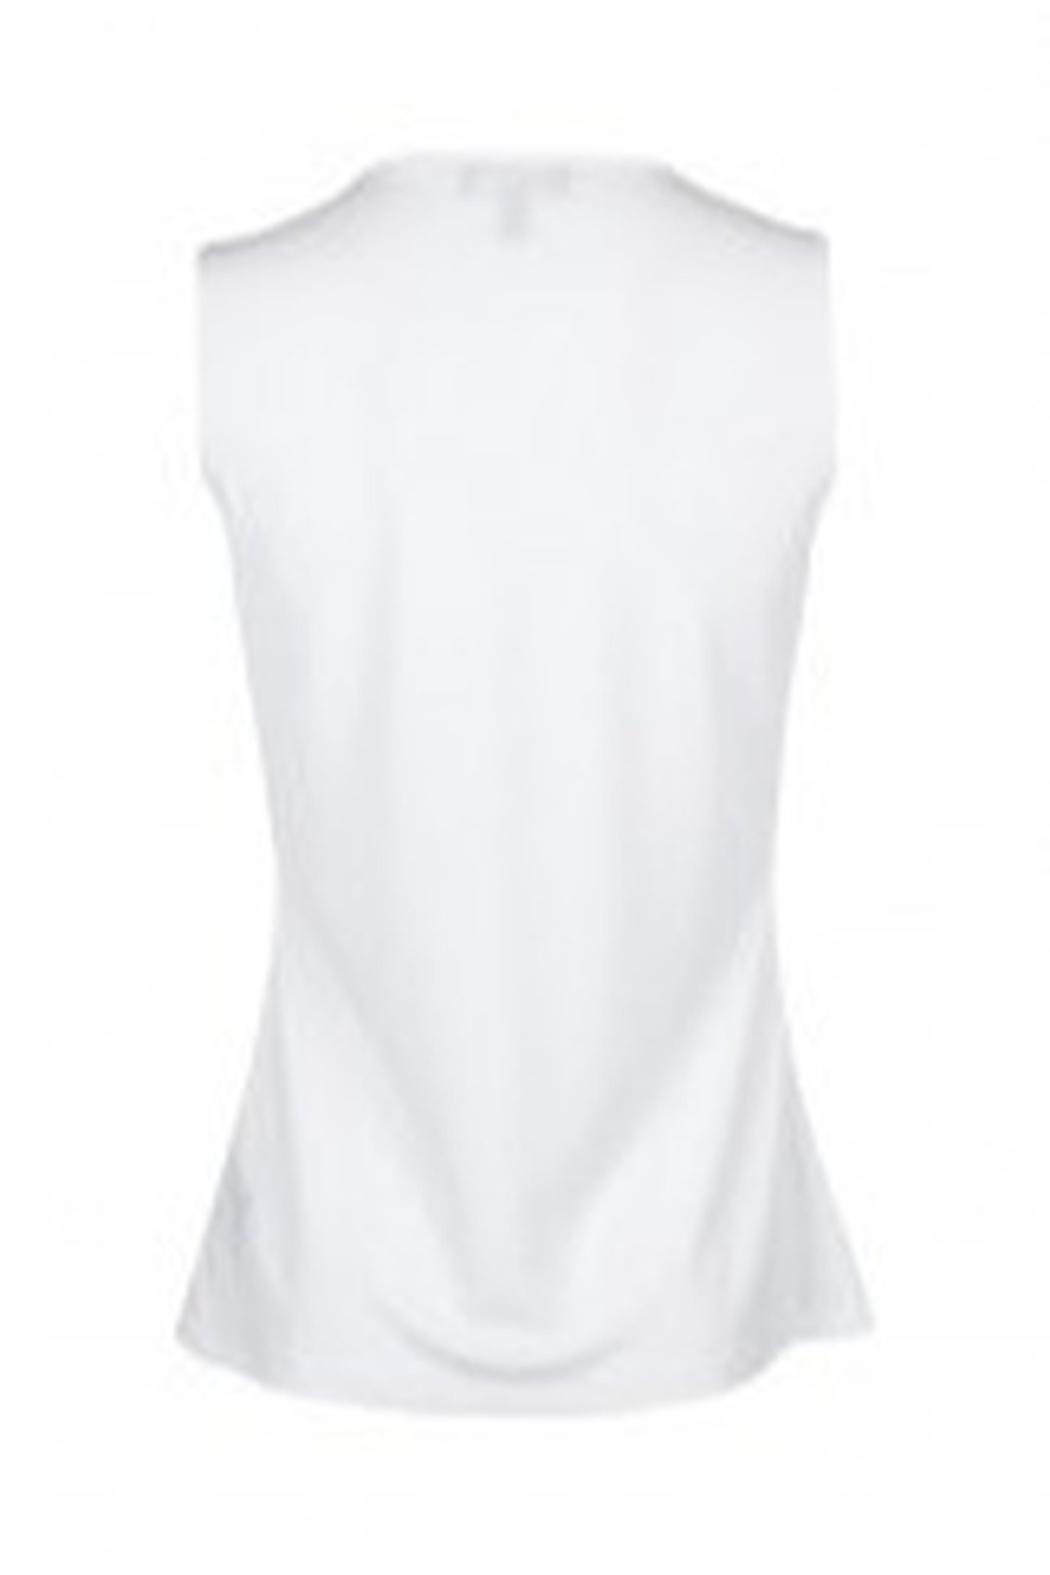 Carre Noir Scoop Neck Sleeveless Pleated Side Solid Jersey Top - Front Full Image